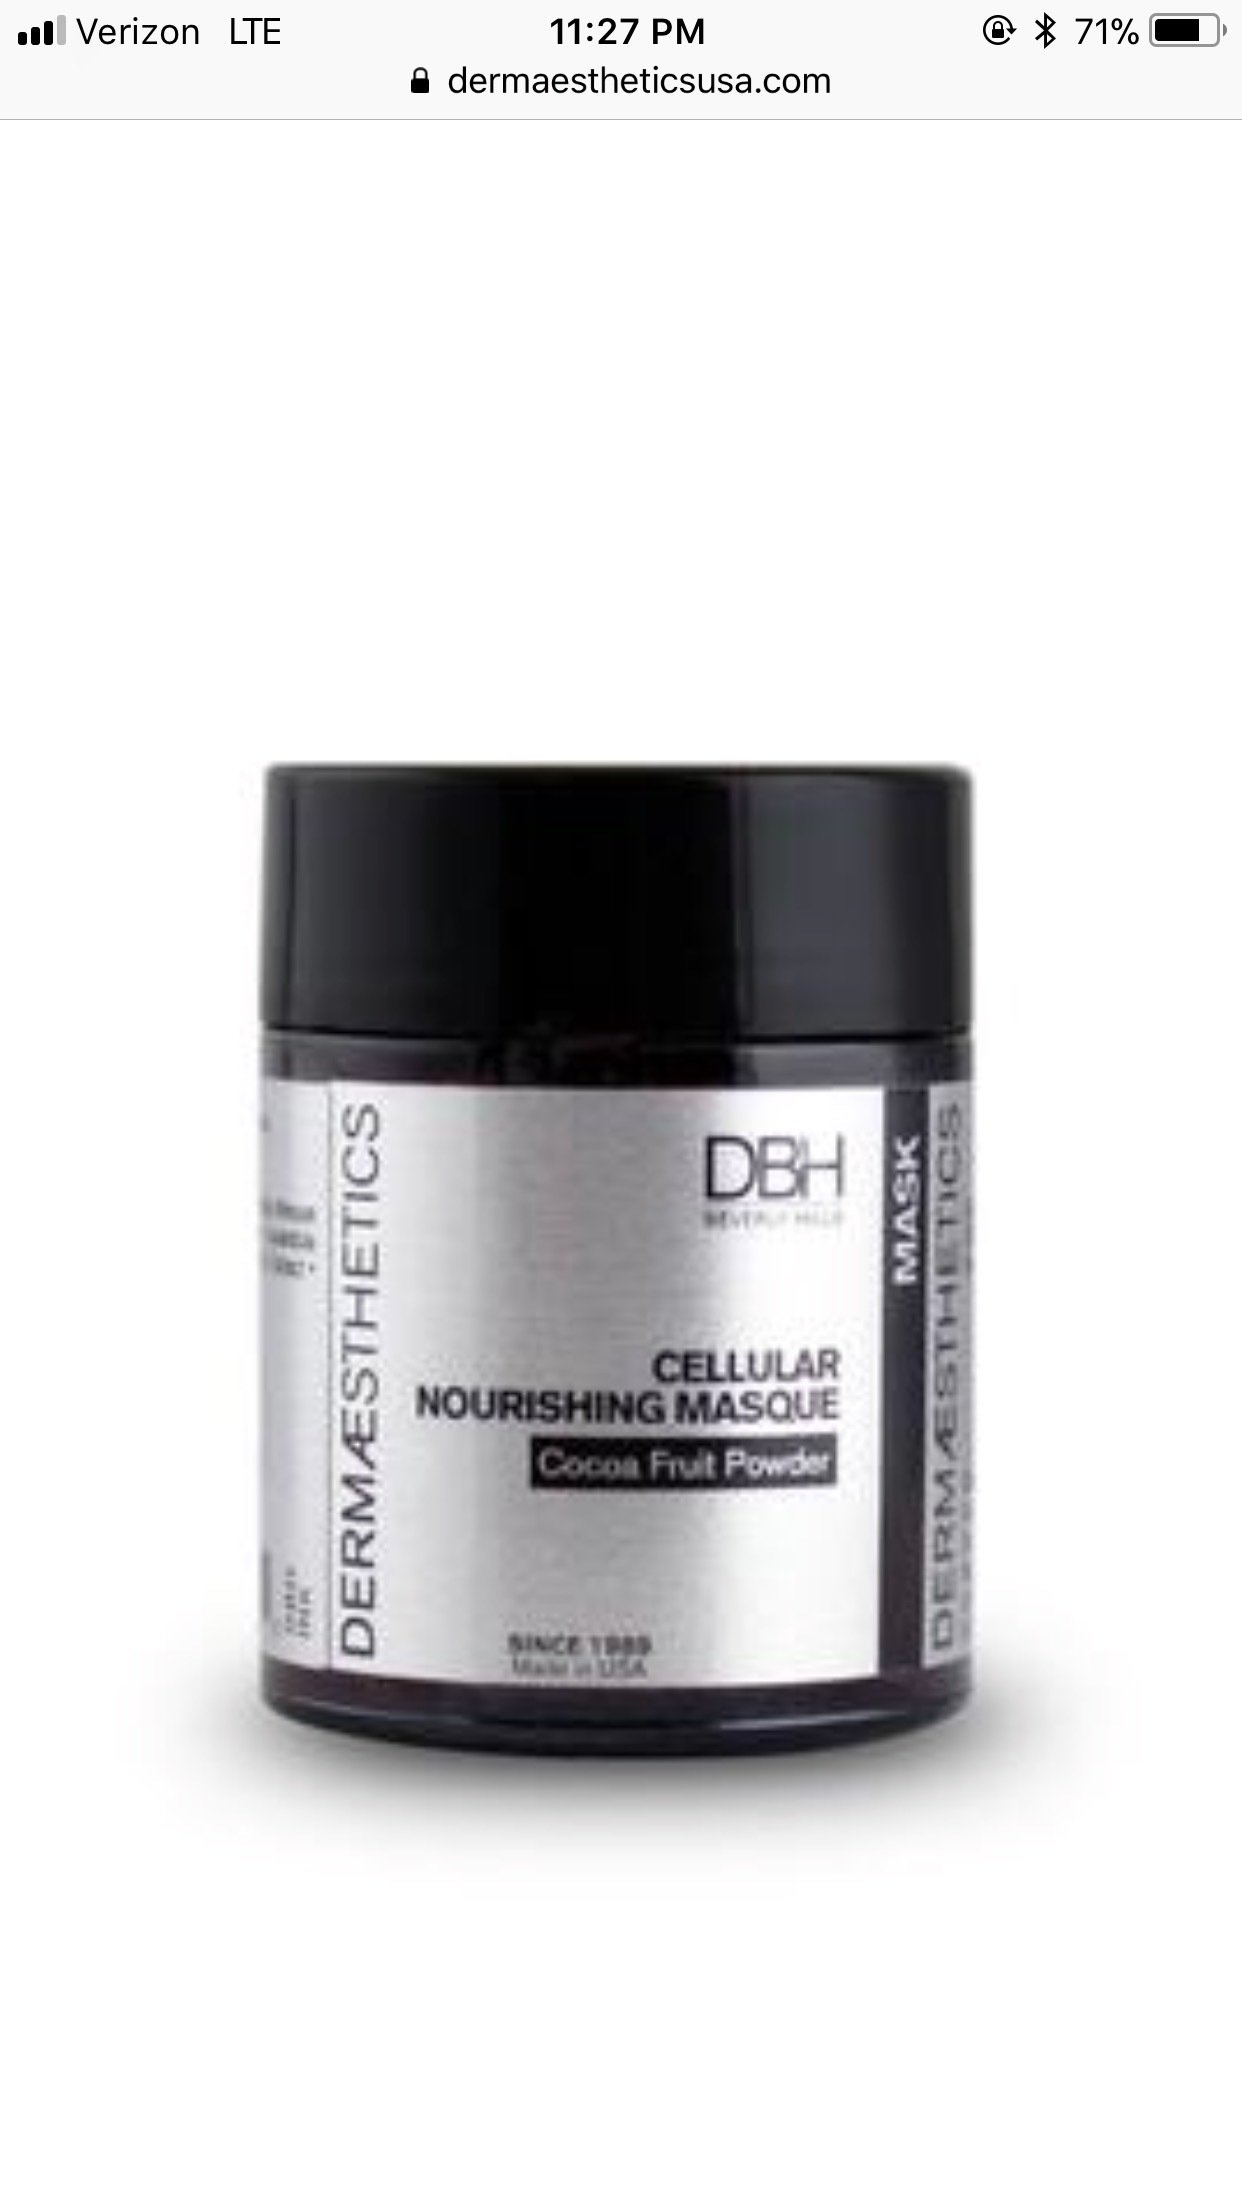 Cellular Nourishing Masque 00007